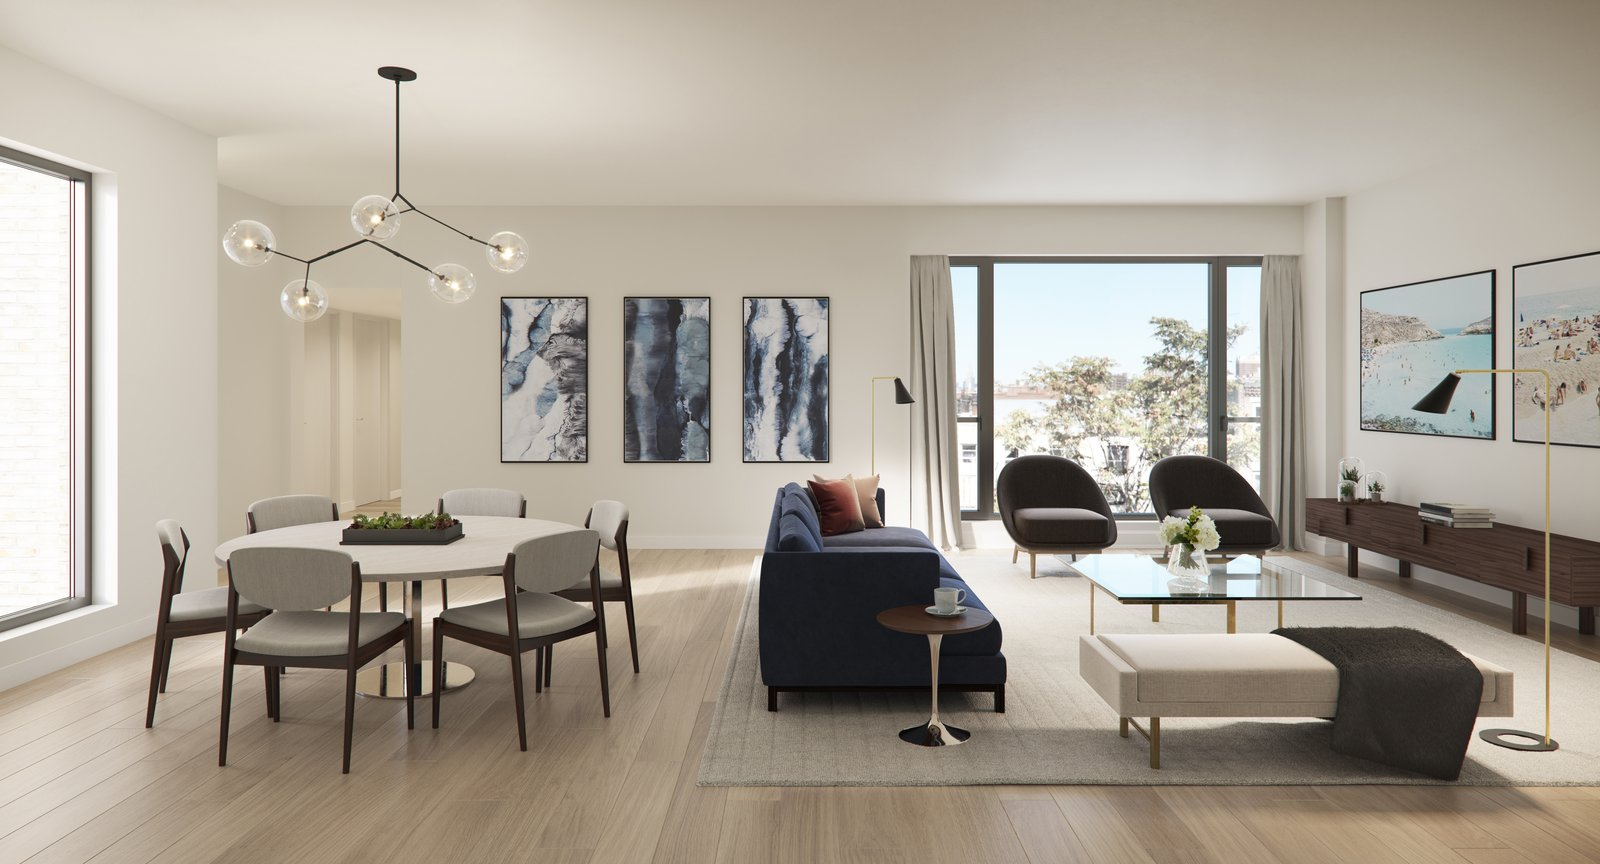 Living Room, Sofa, Bench, Chair, Coffee Tables, End Tables, Floor Lighting, Pendant Lighting, and Accent Lighting French-door inspired windows open up the space letting in ample natural lighting.  Photo 2 of 10 in 5 Easy Tips From Modern Condos For Creating a Scandinavian-Inspired Interior